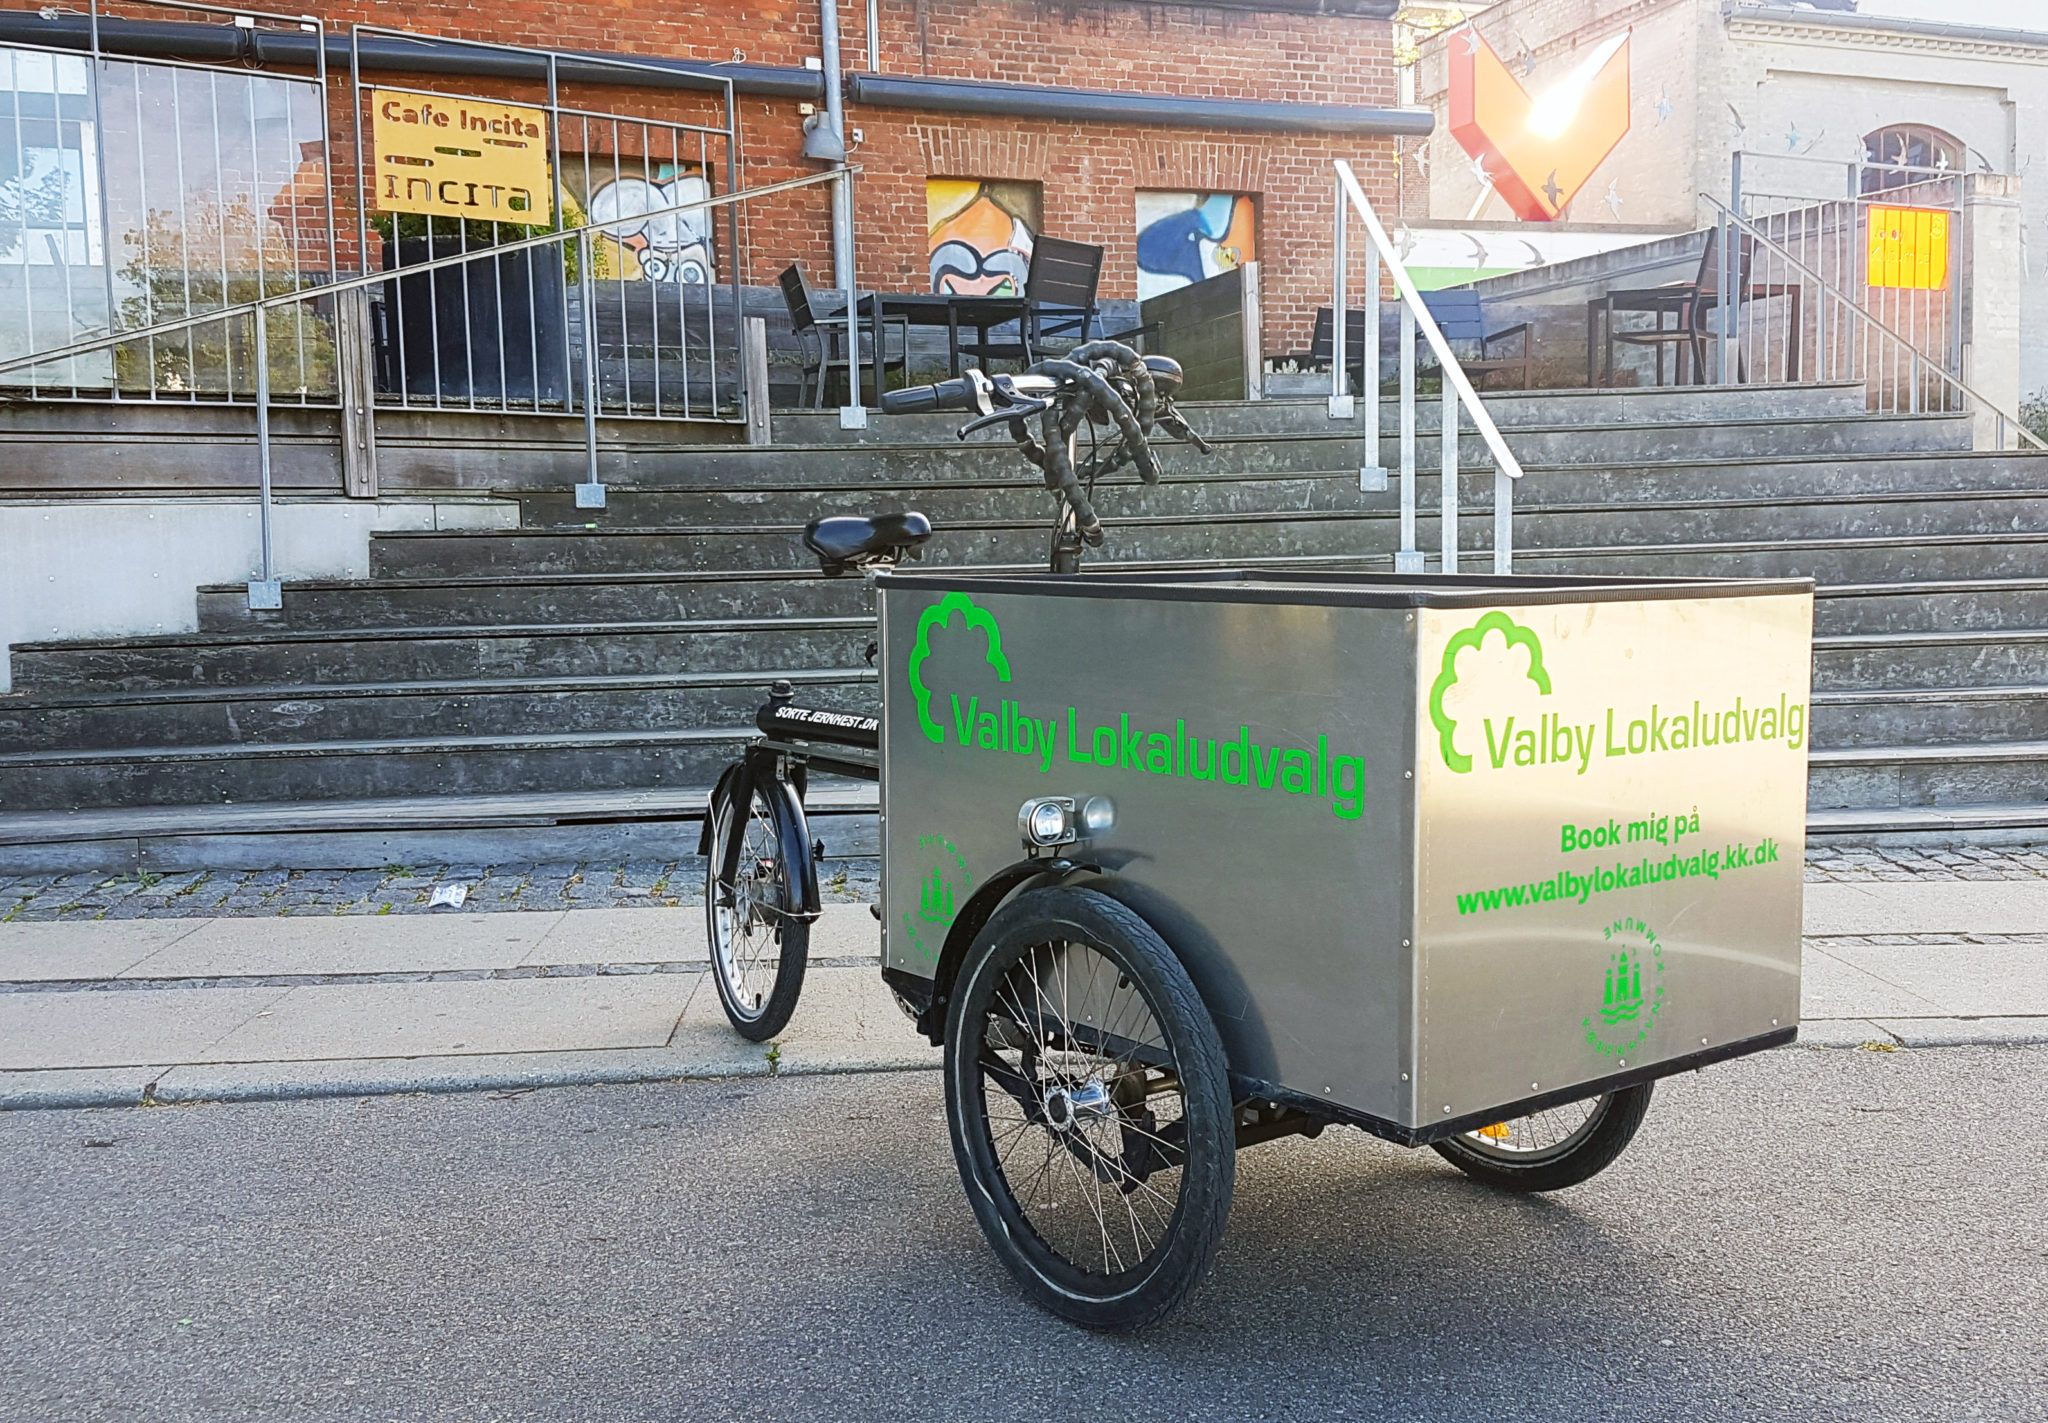 Valby Lokaludvalg ladcykel